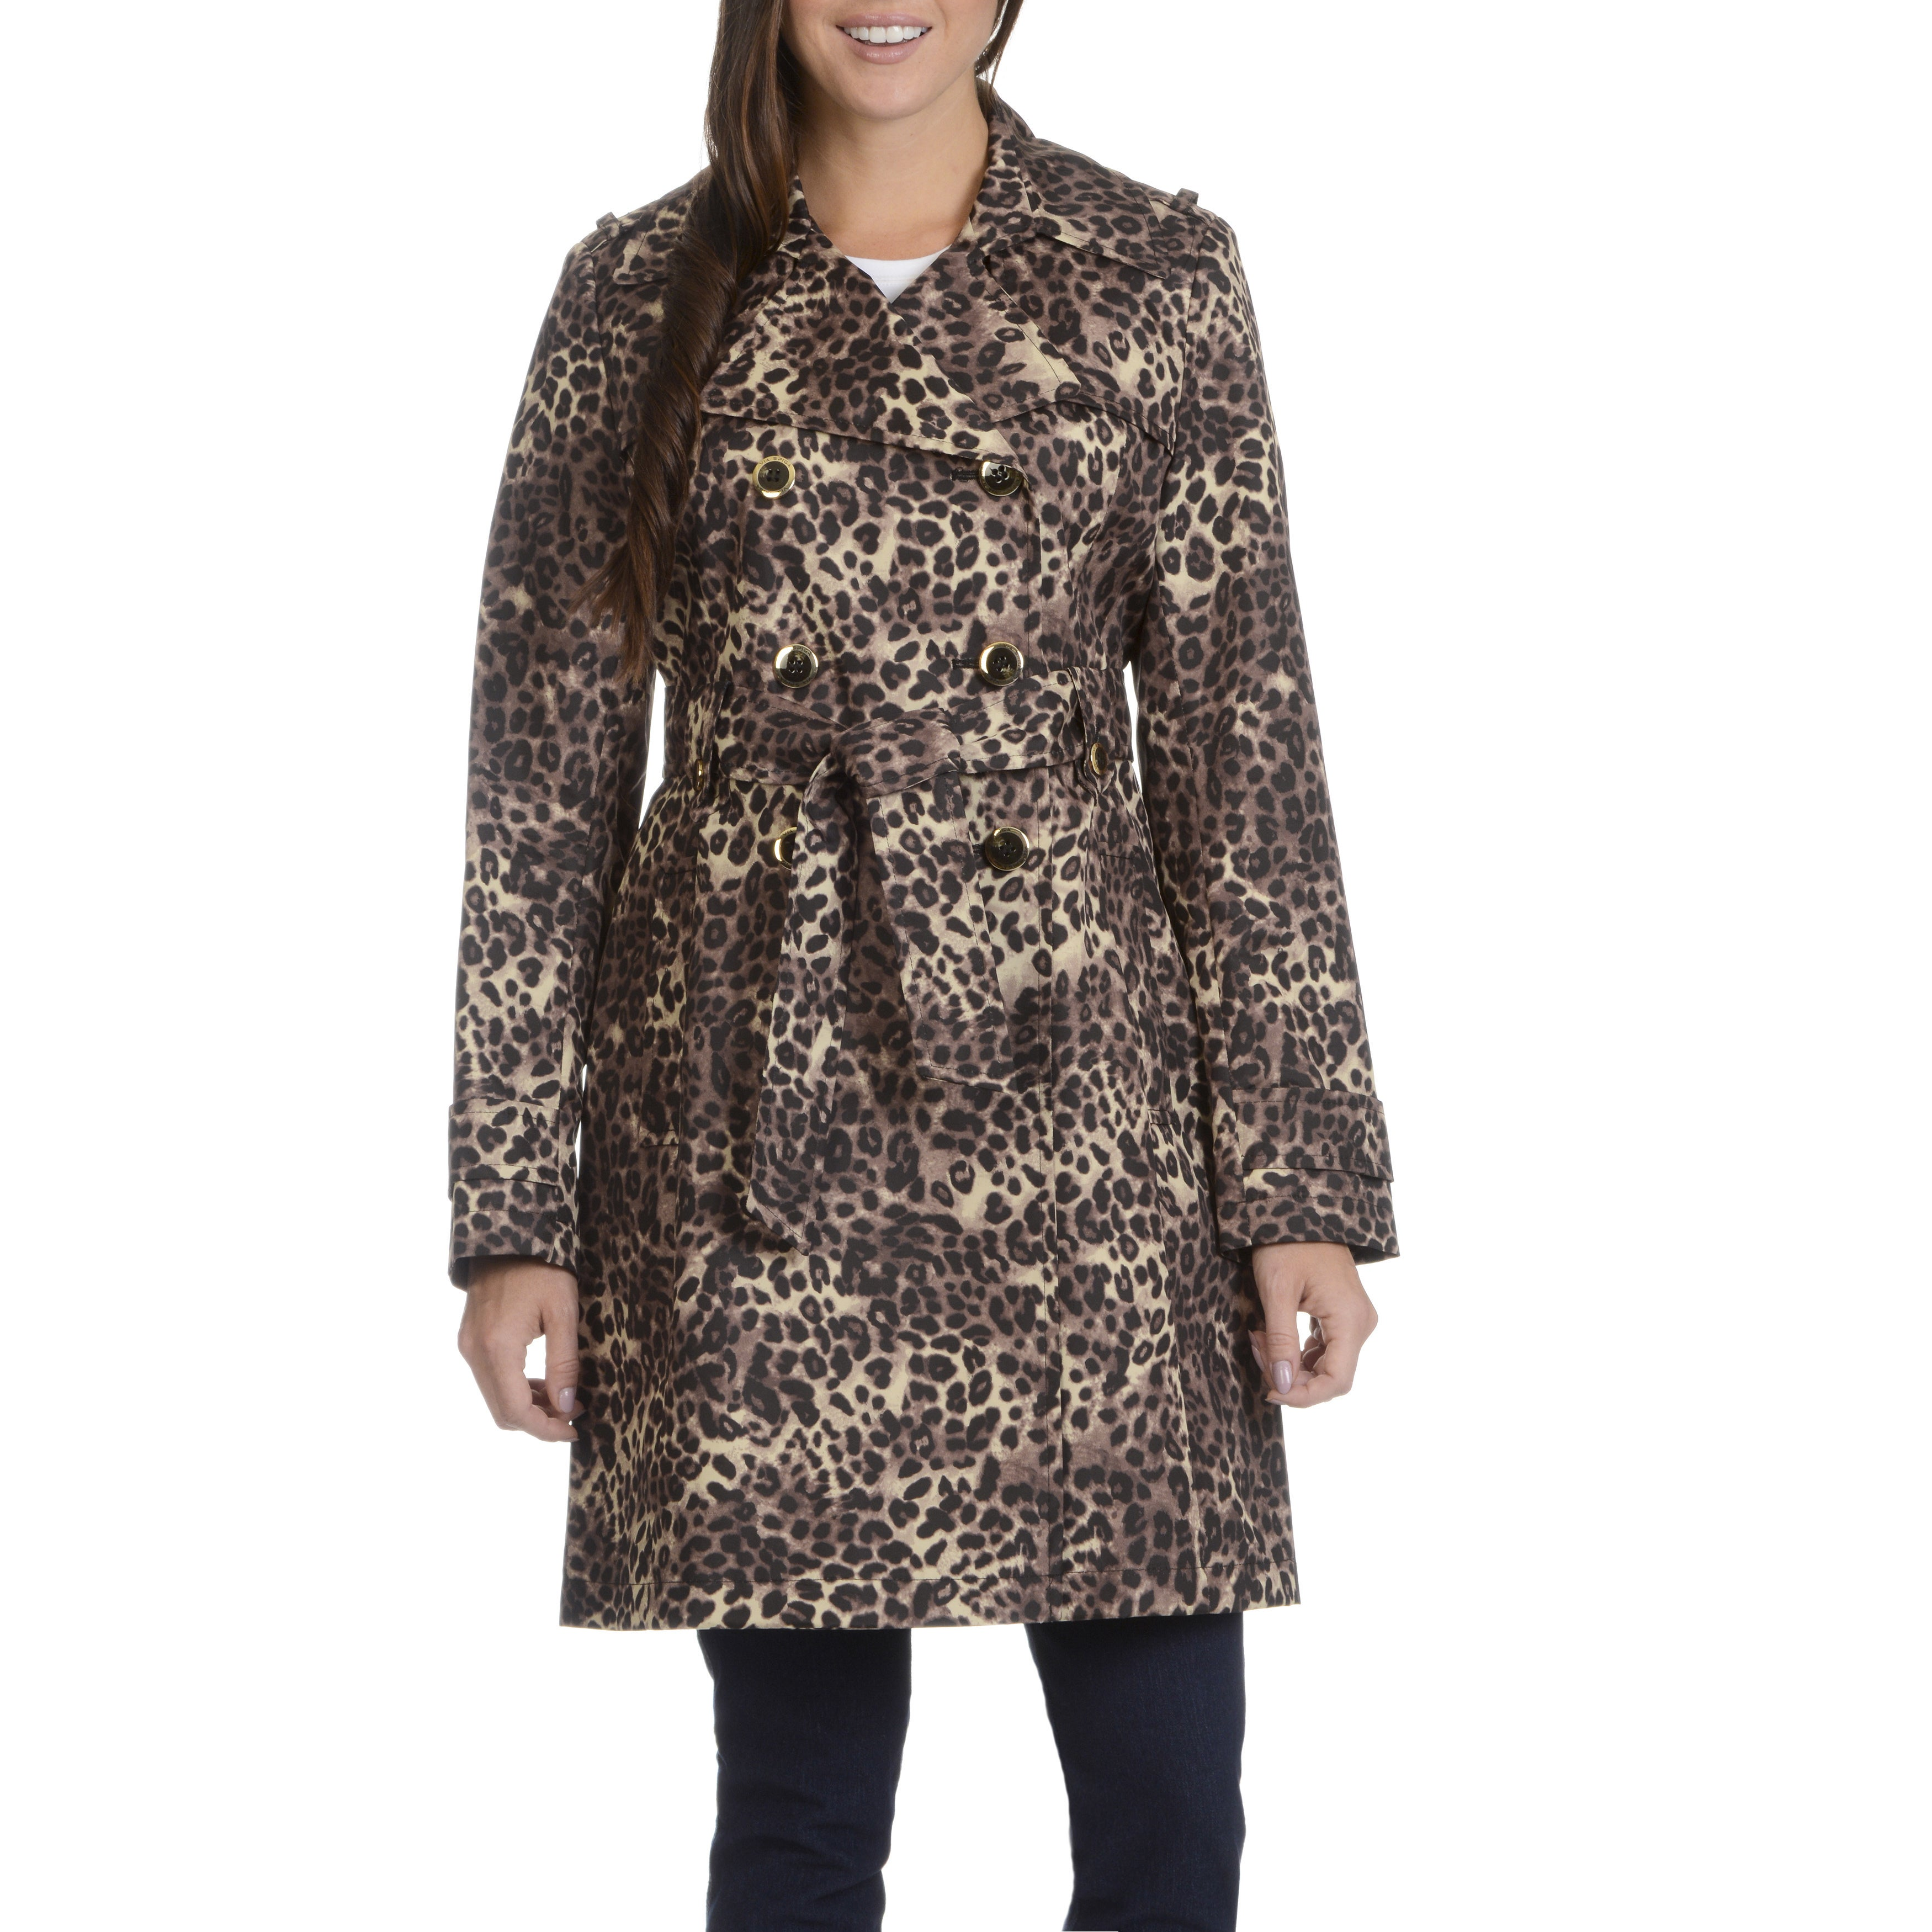 Via Spiga Women's Leopard Double Breasted Trench Coat (Le...